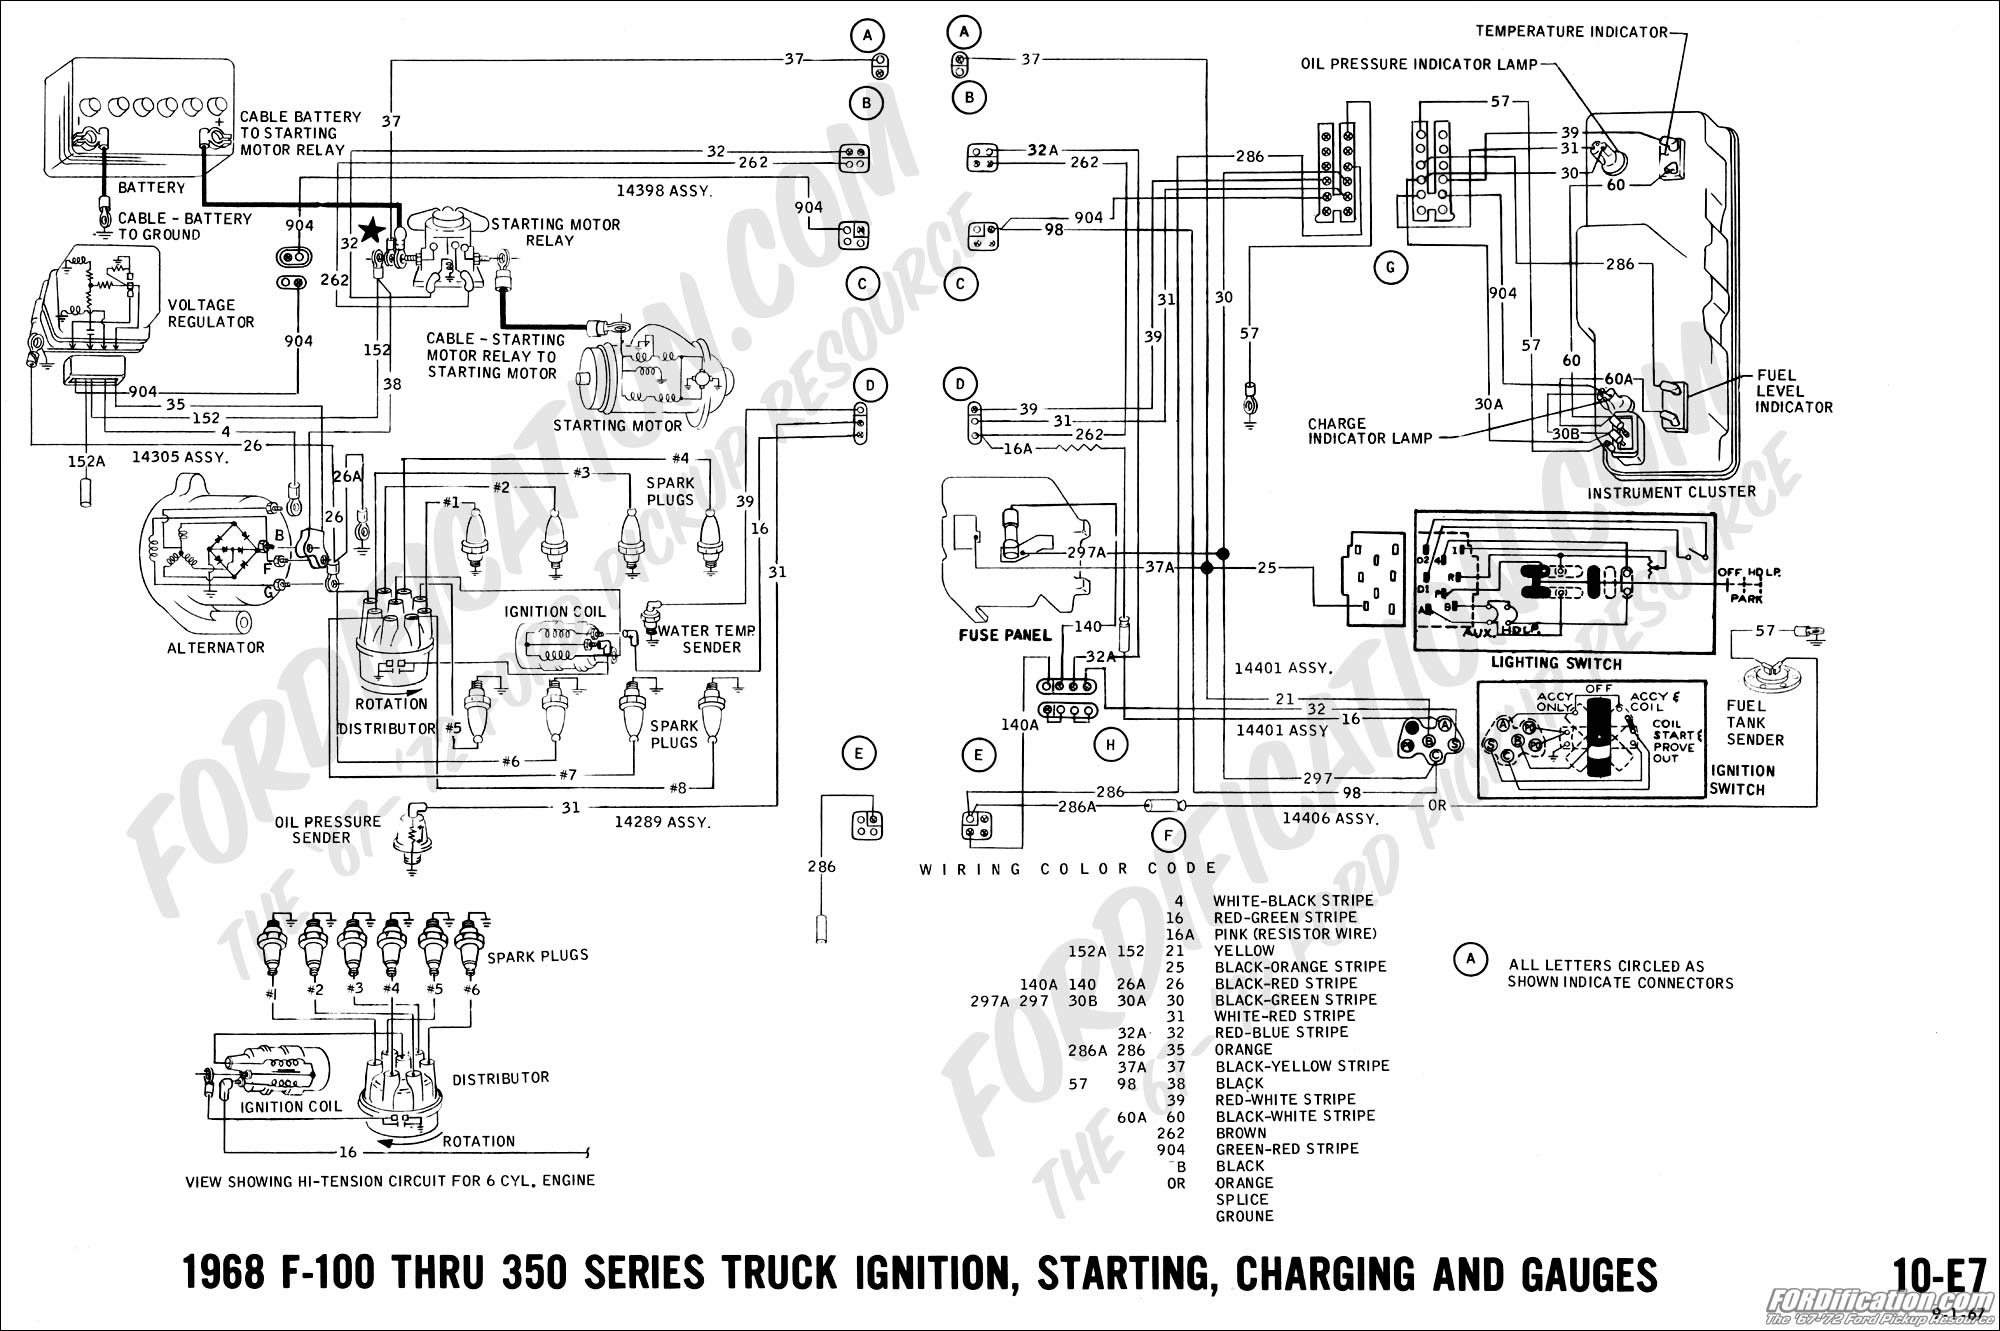 1982 F350 Fuel System Wiring Diagram Lightforce Hid Conversion Kit Wiring Diagram Vww 69 Ati Loro Jeanjaures37 Fr